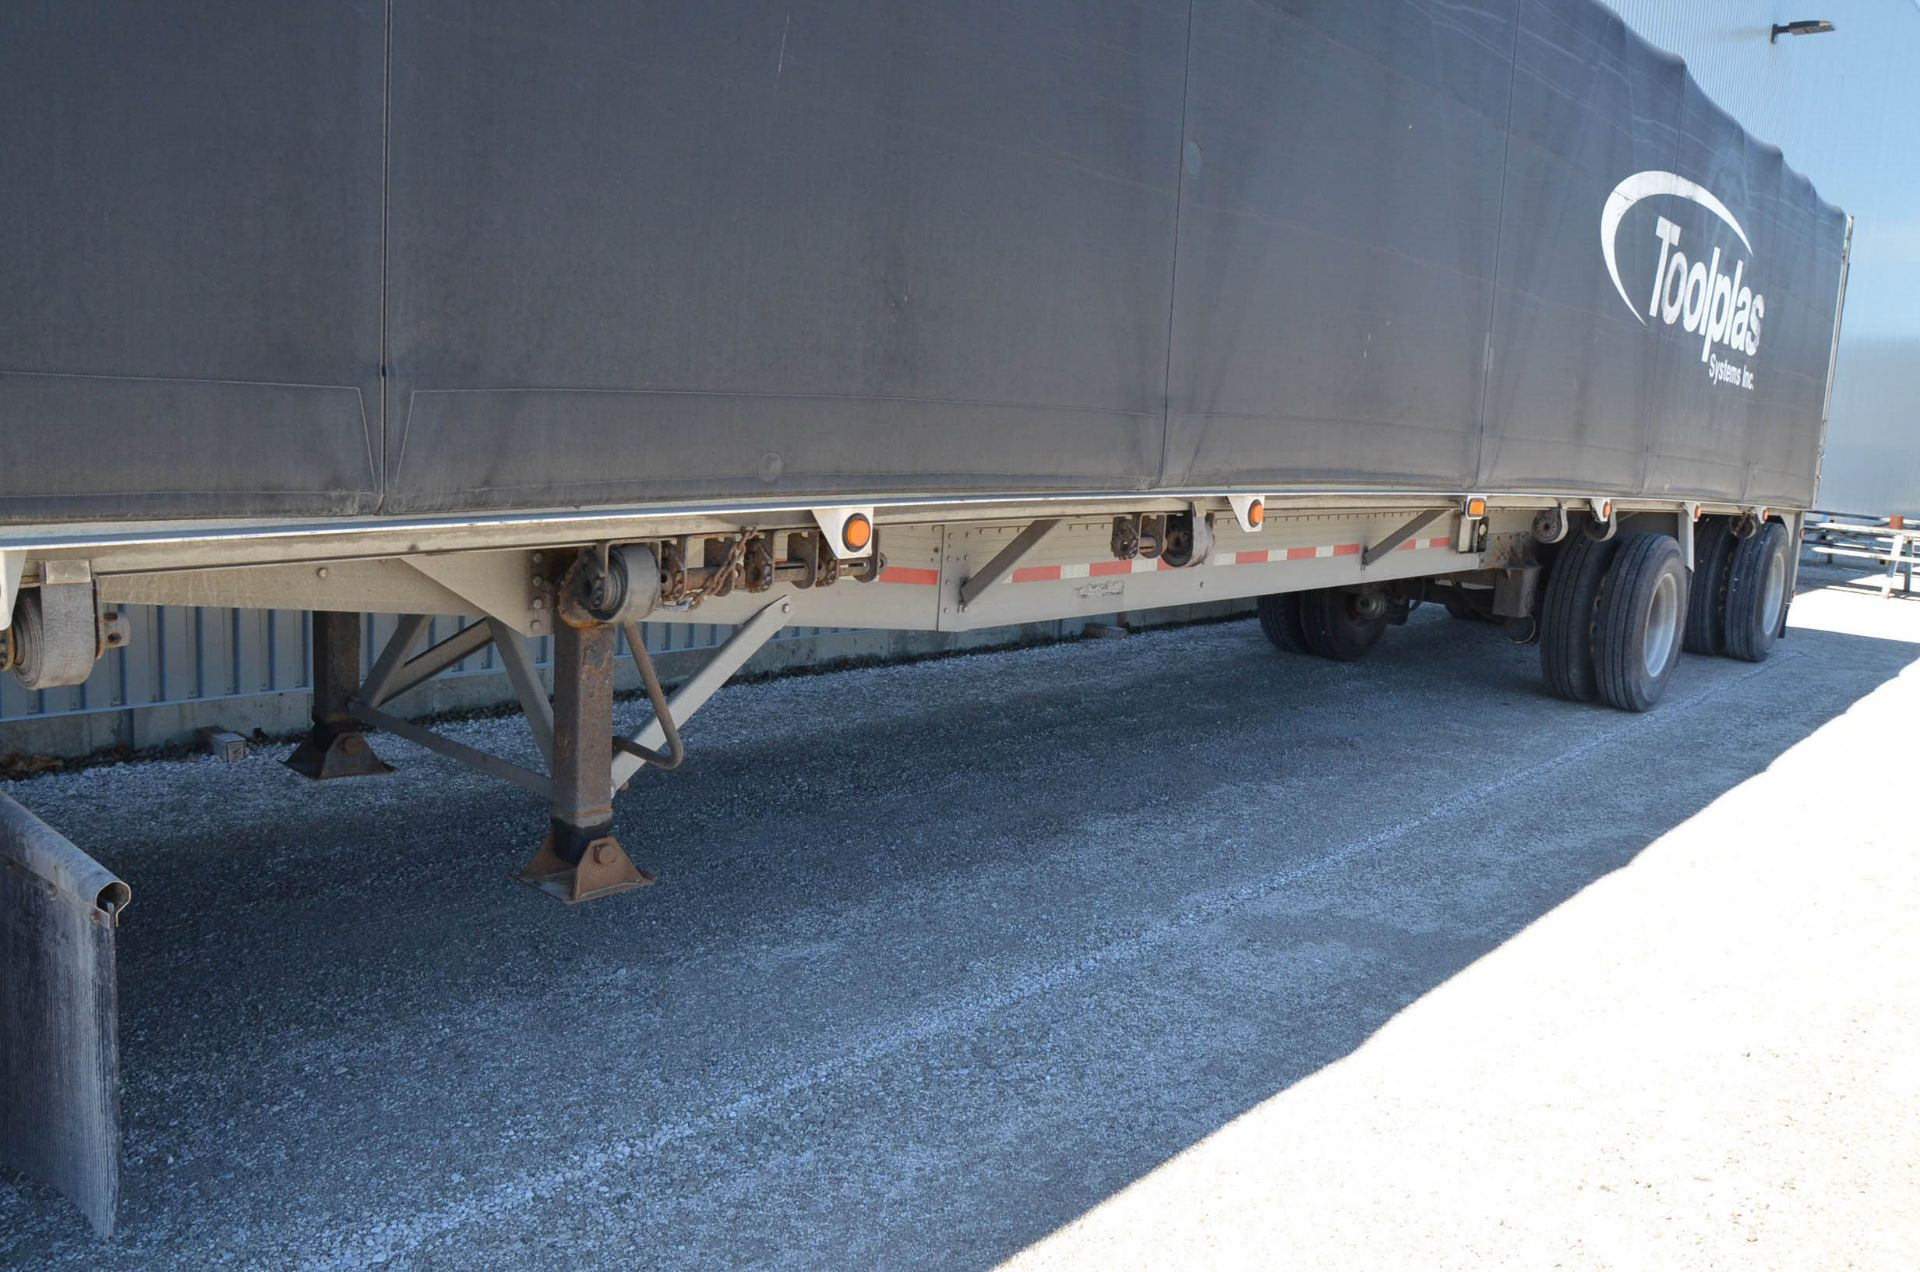 REITNOUER (1999) TANDEM AXLE ALUMINUM FLAT-DECK TRAILER, ROLL TITE QUICK DRAW TARP SYSTEM, VIN: - Image 4 of 12